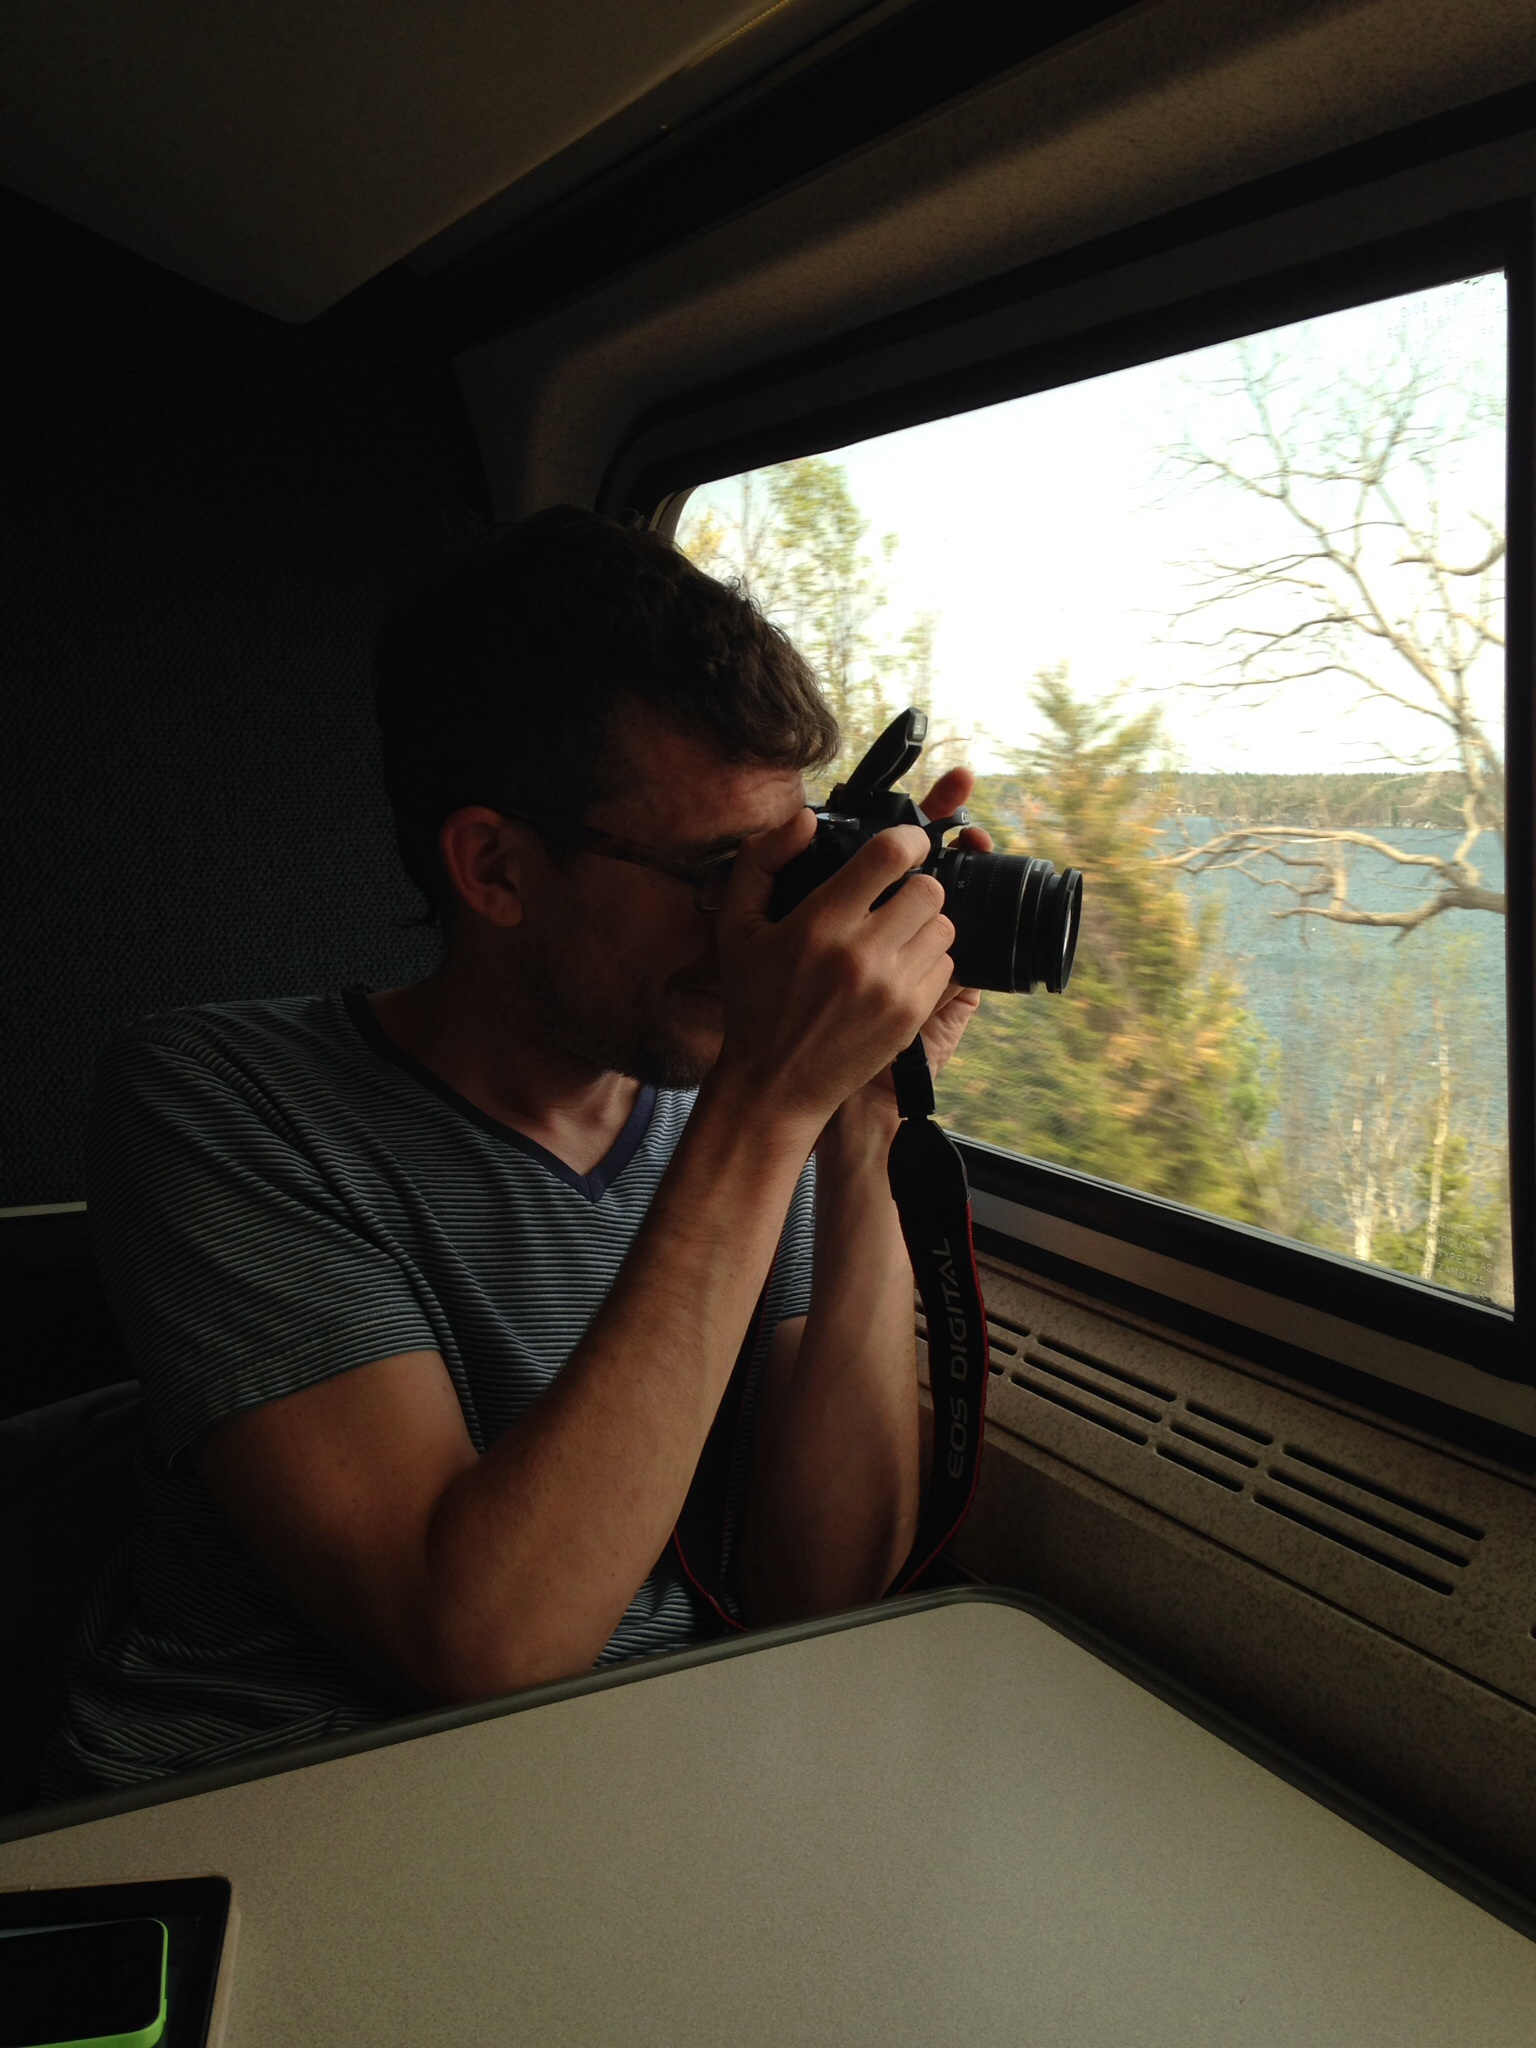 Jason documenting our train ride